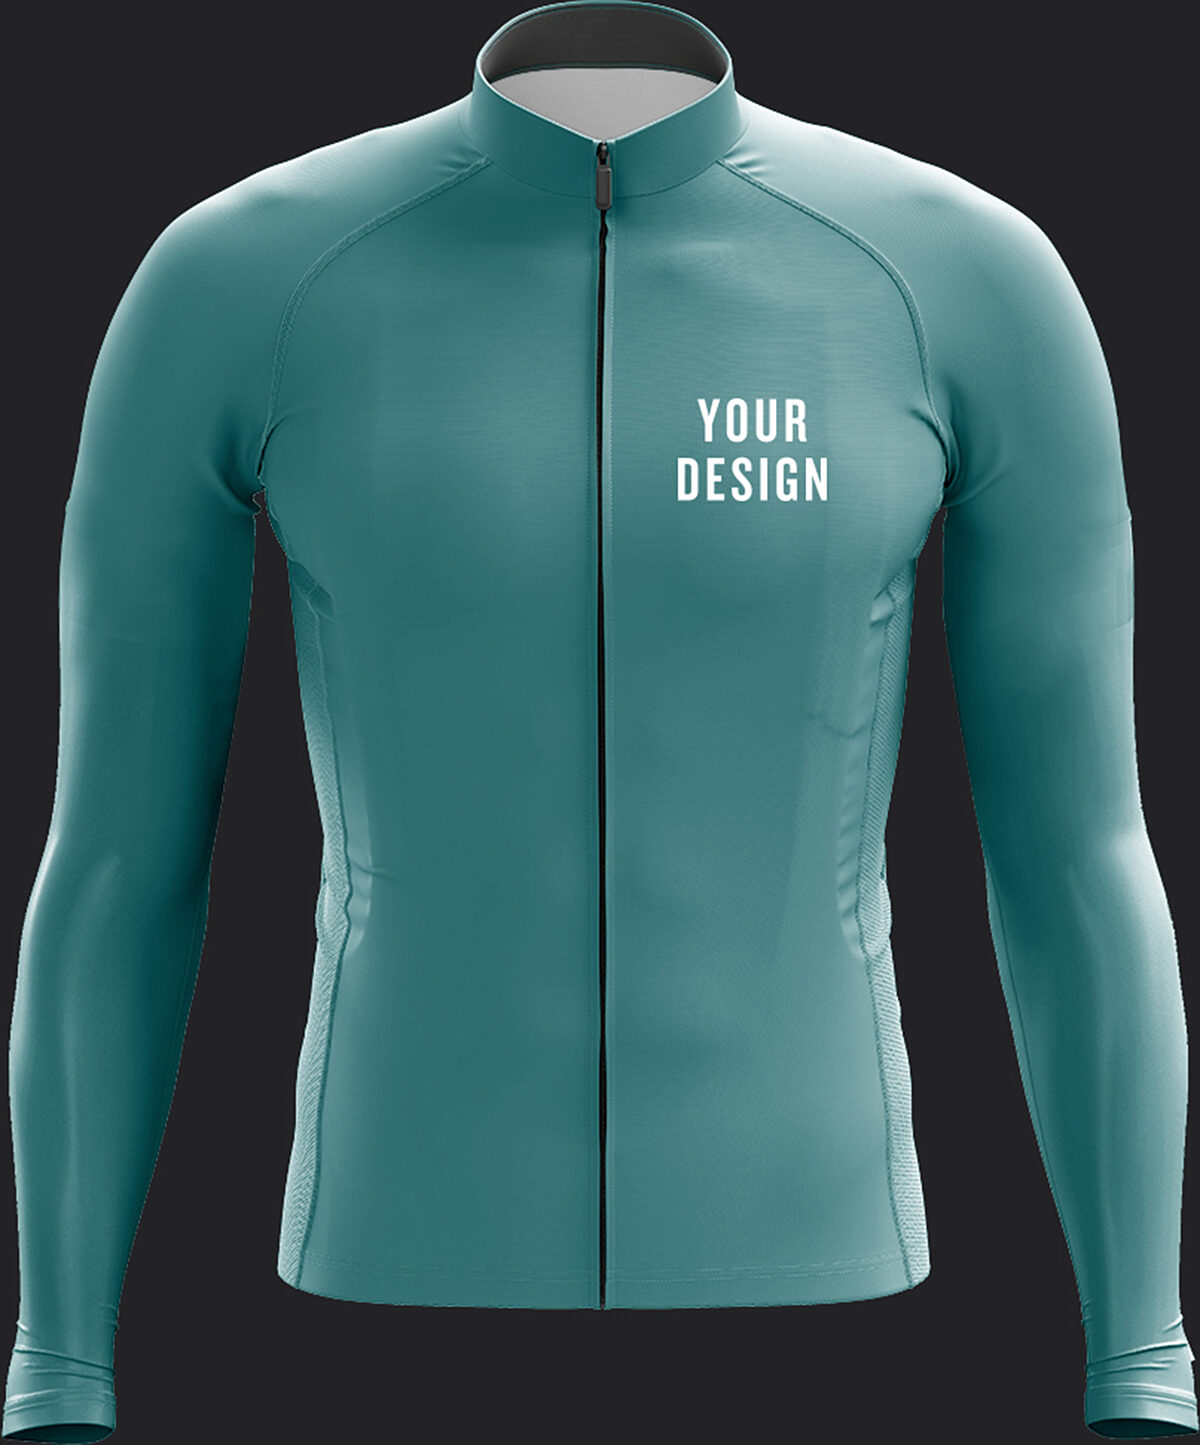 Bodhi cycling custom longsleeve men